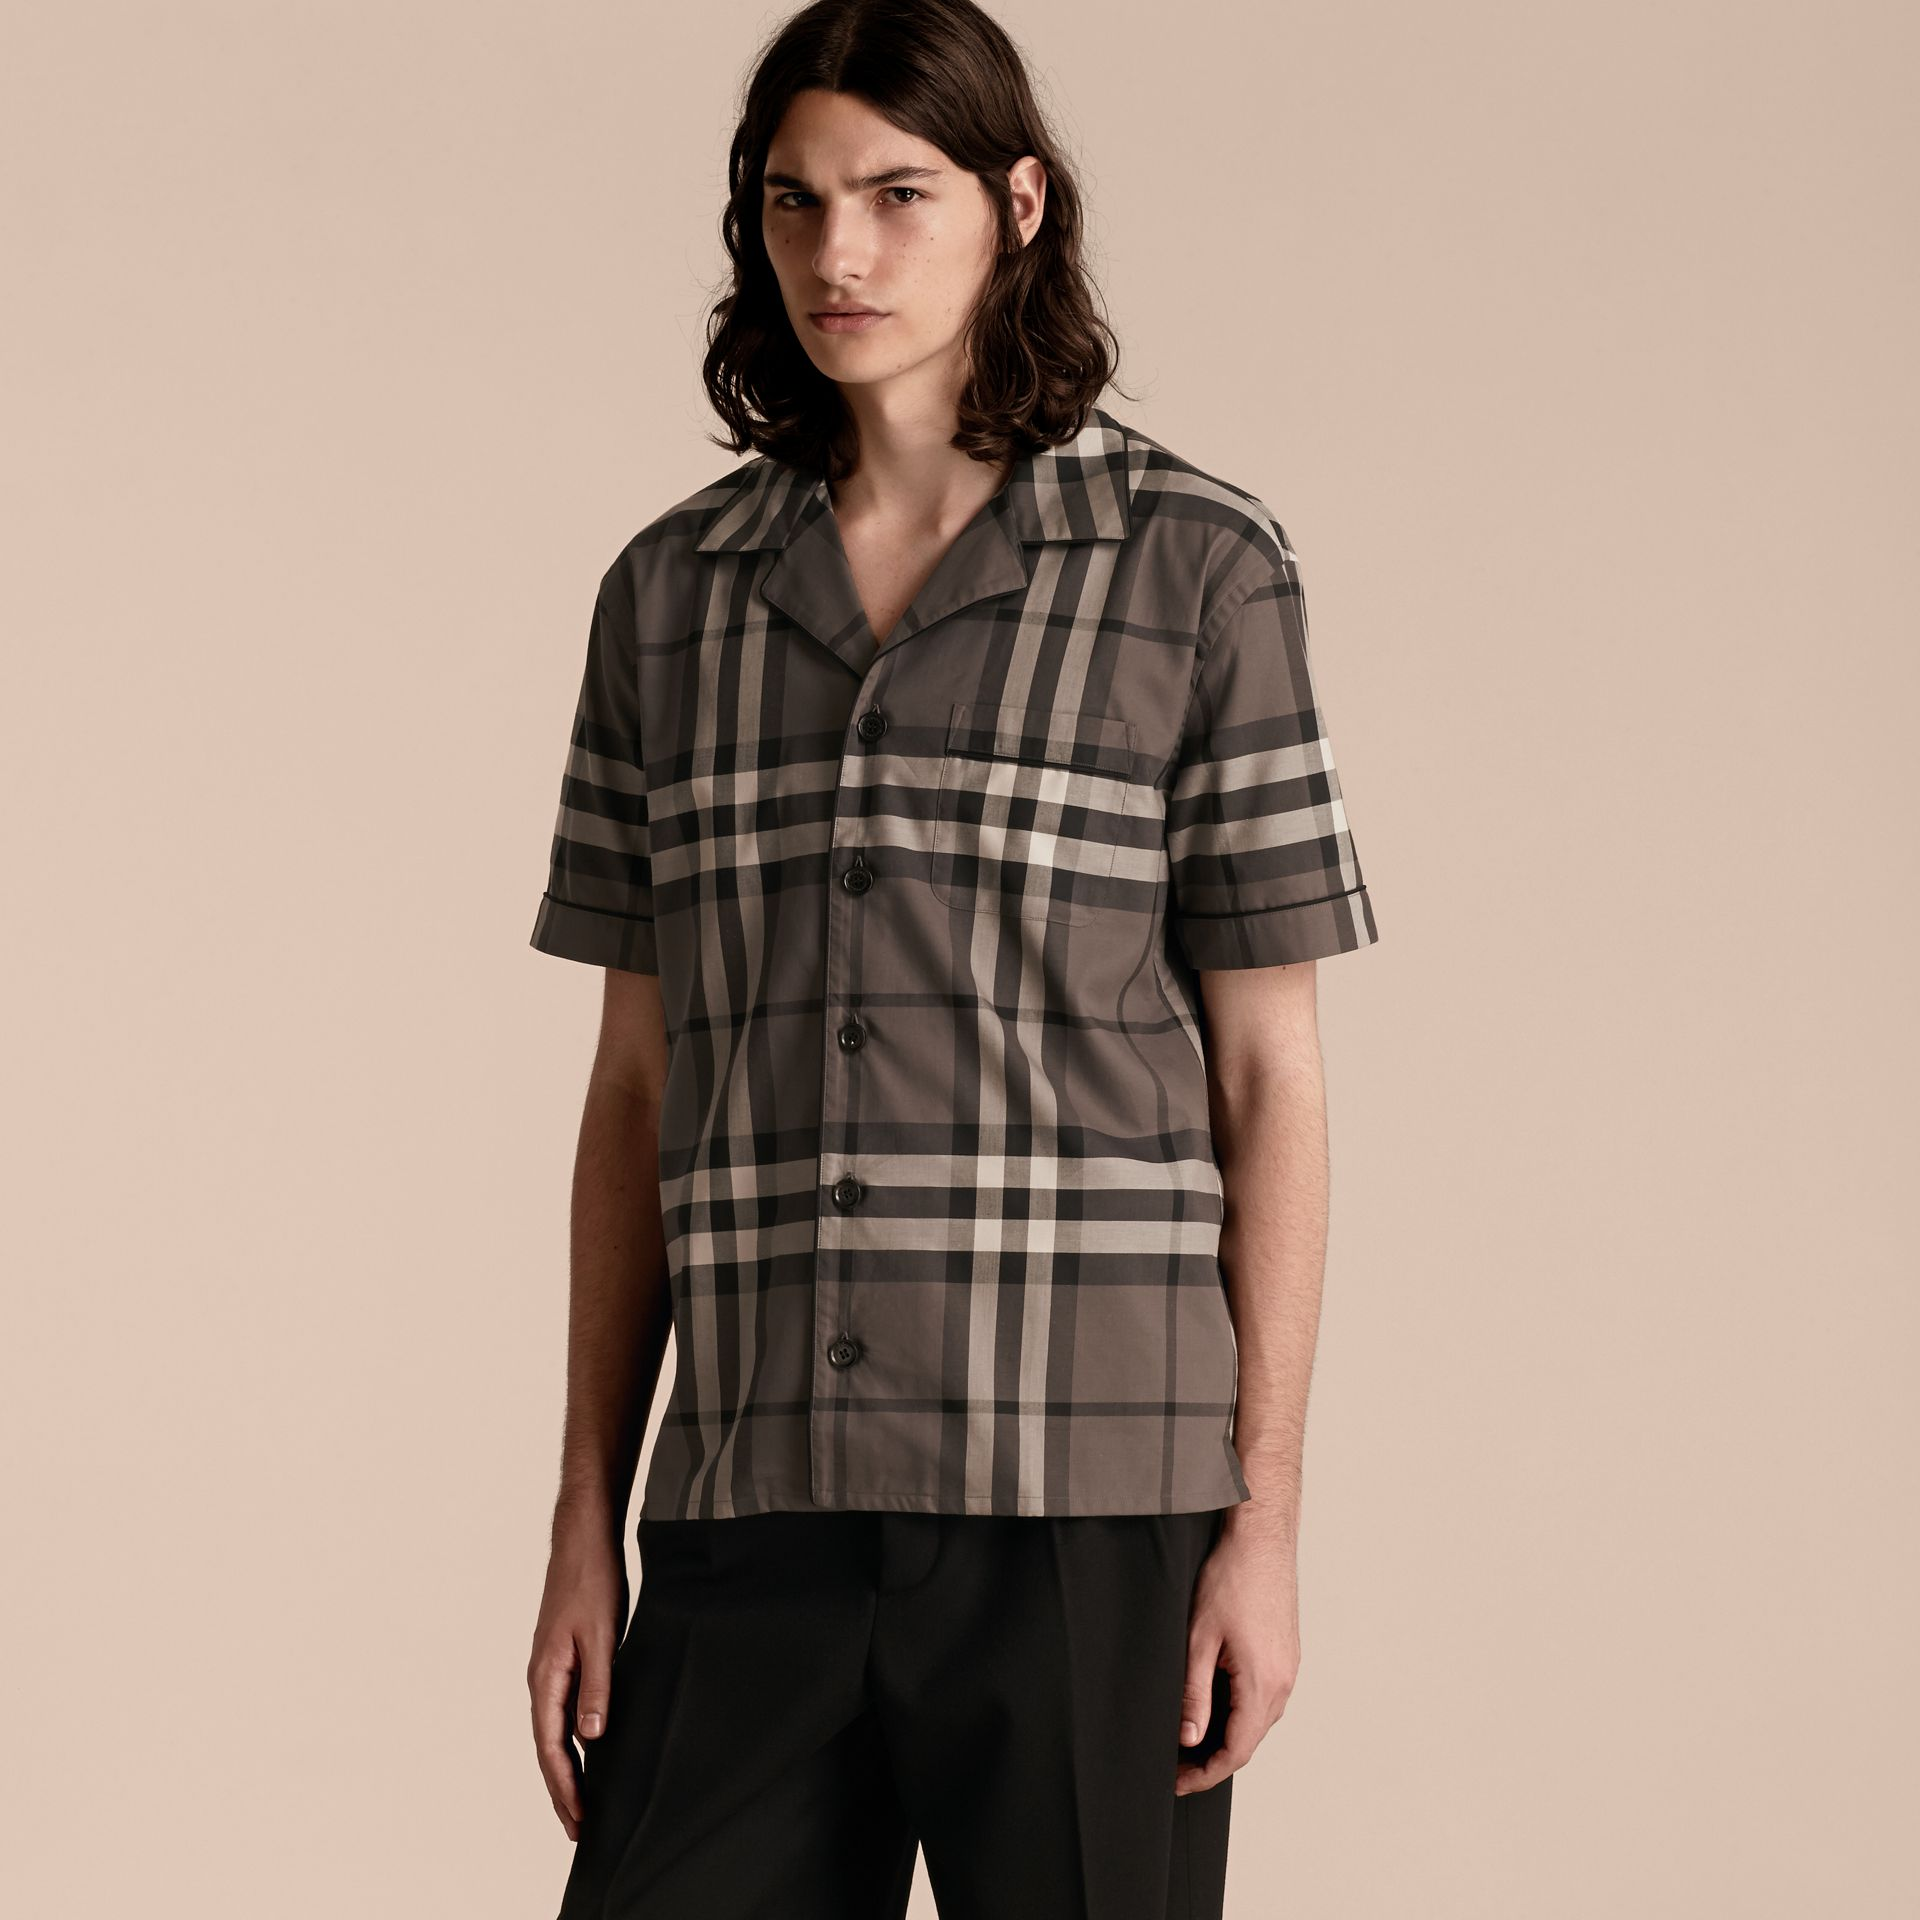 Charcoal Short-sleeved Check Cotton Pyjama-style Shirt - gallery image 6